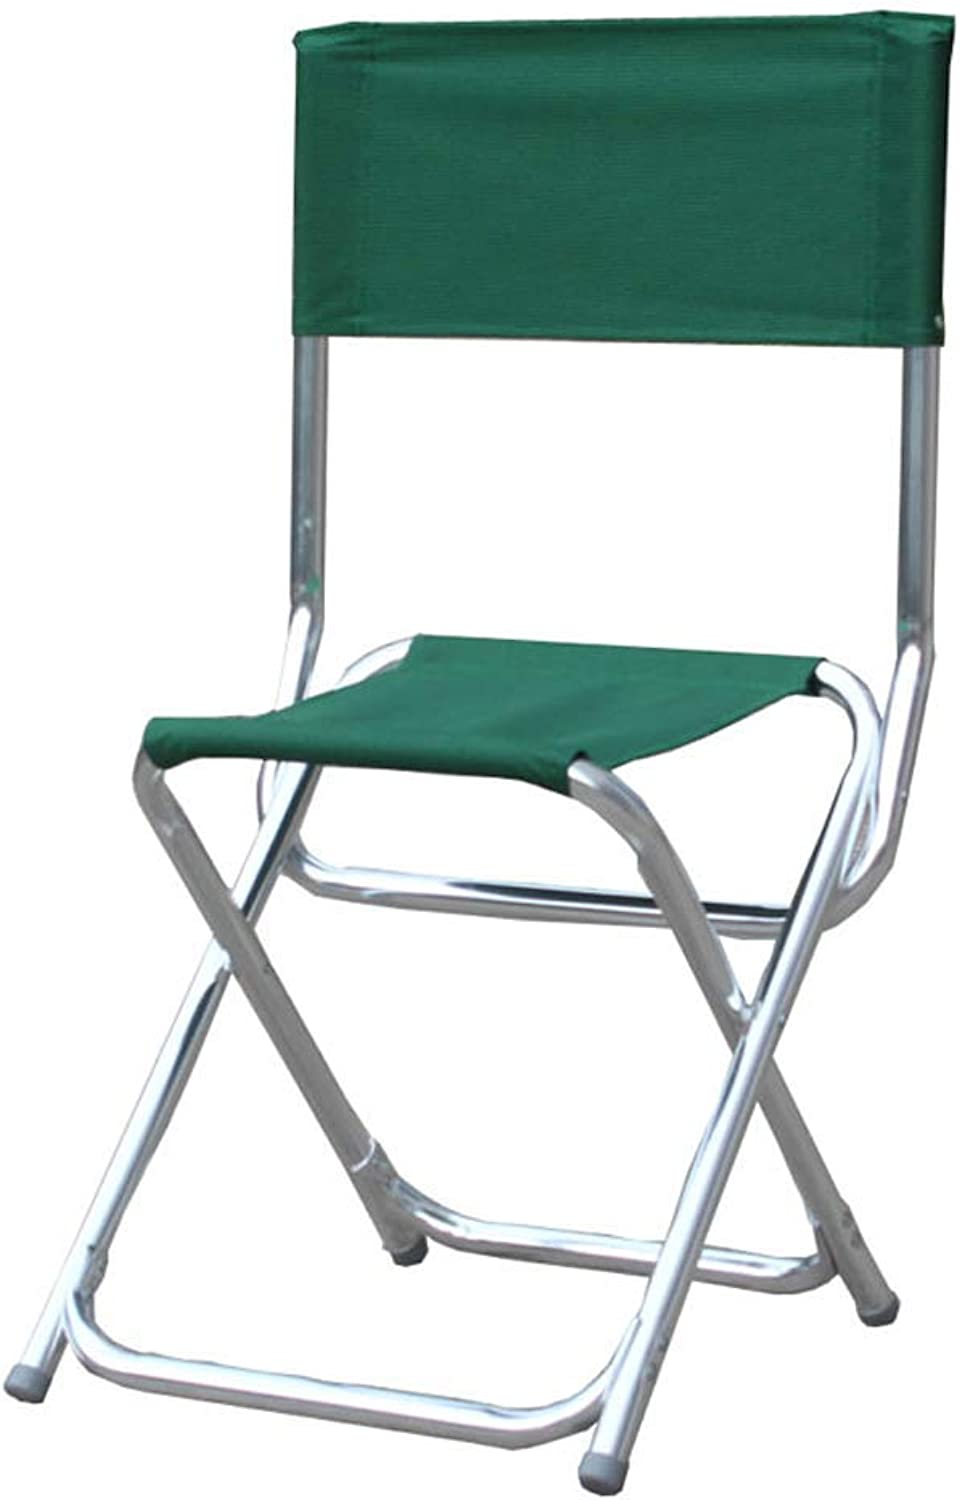 Outdoor Products Portable Folding Chairs Folding Stool Outdoor Family Travel Picnic Lightweight Beach Chair